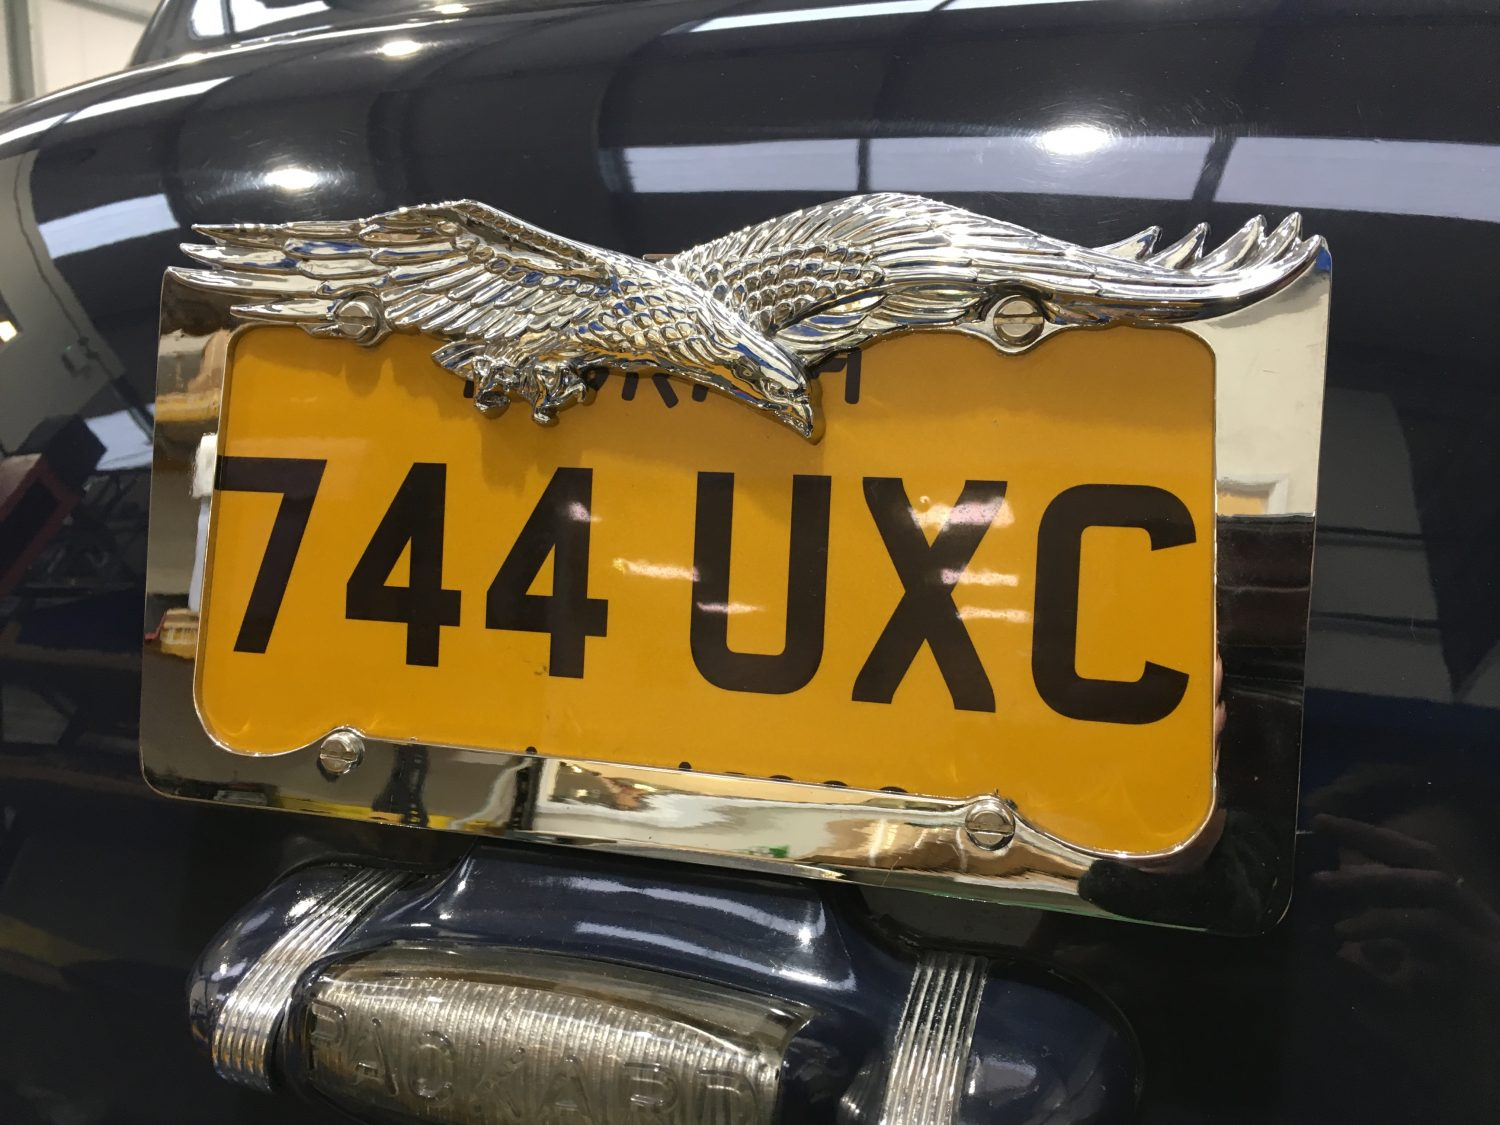 Making up a number plate bracket